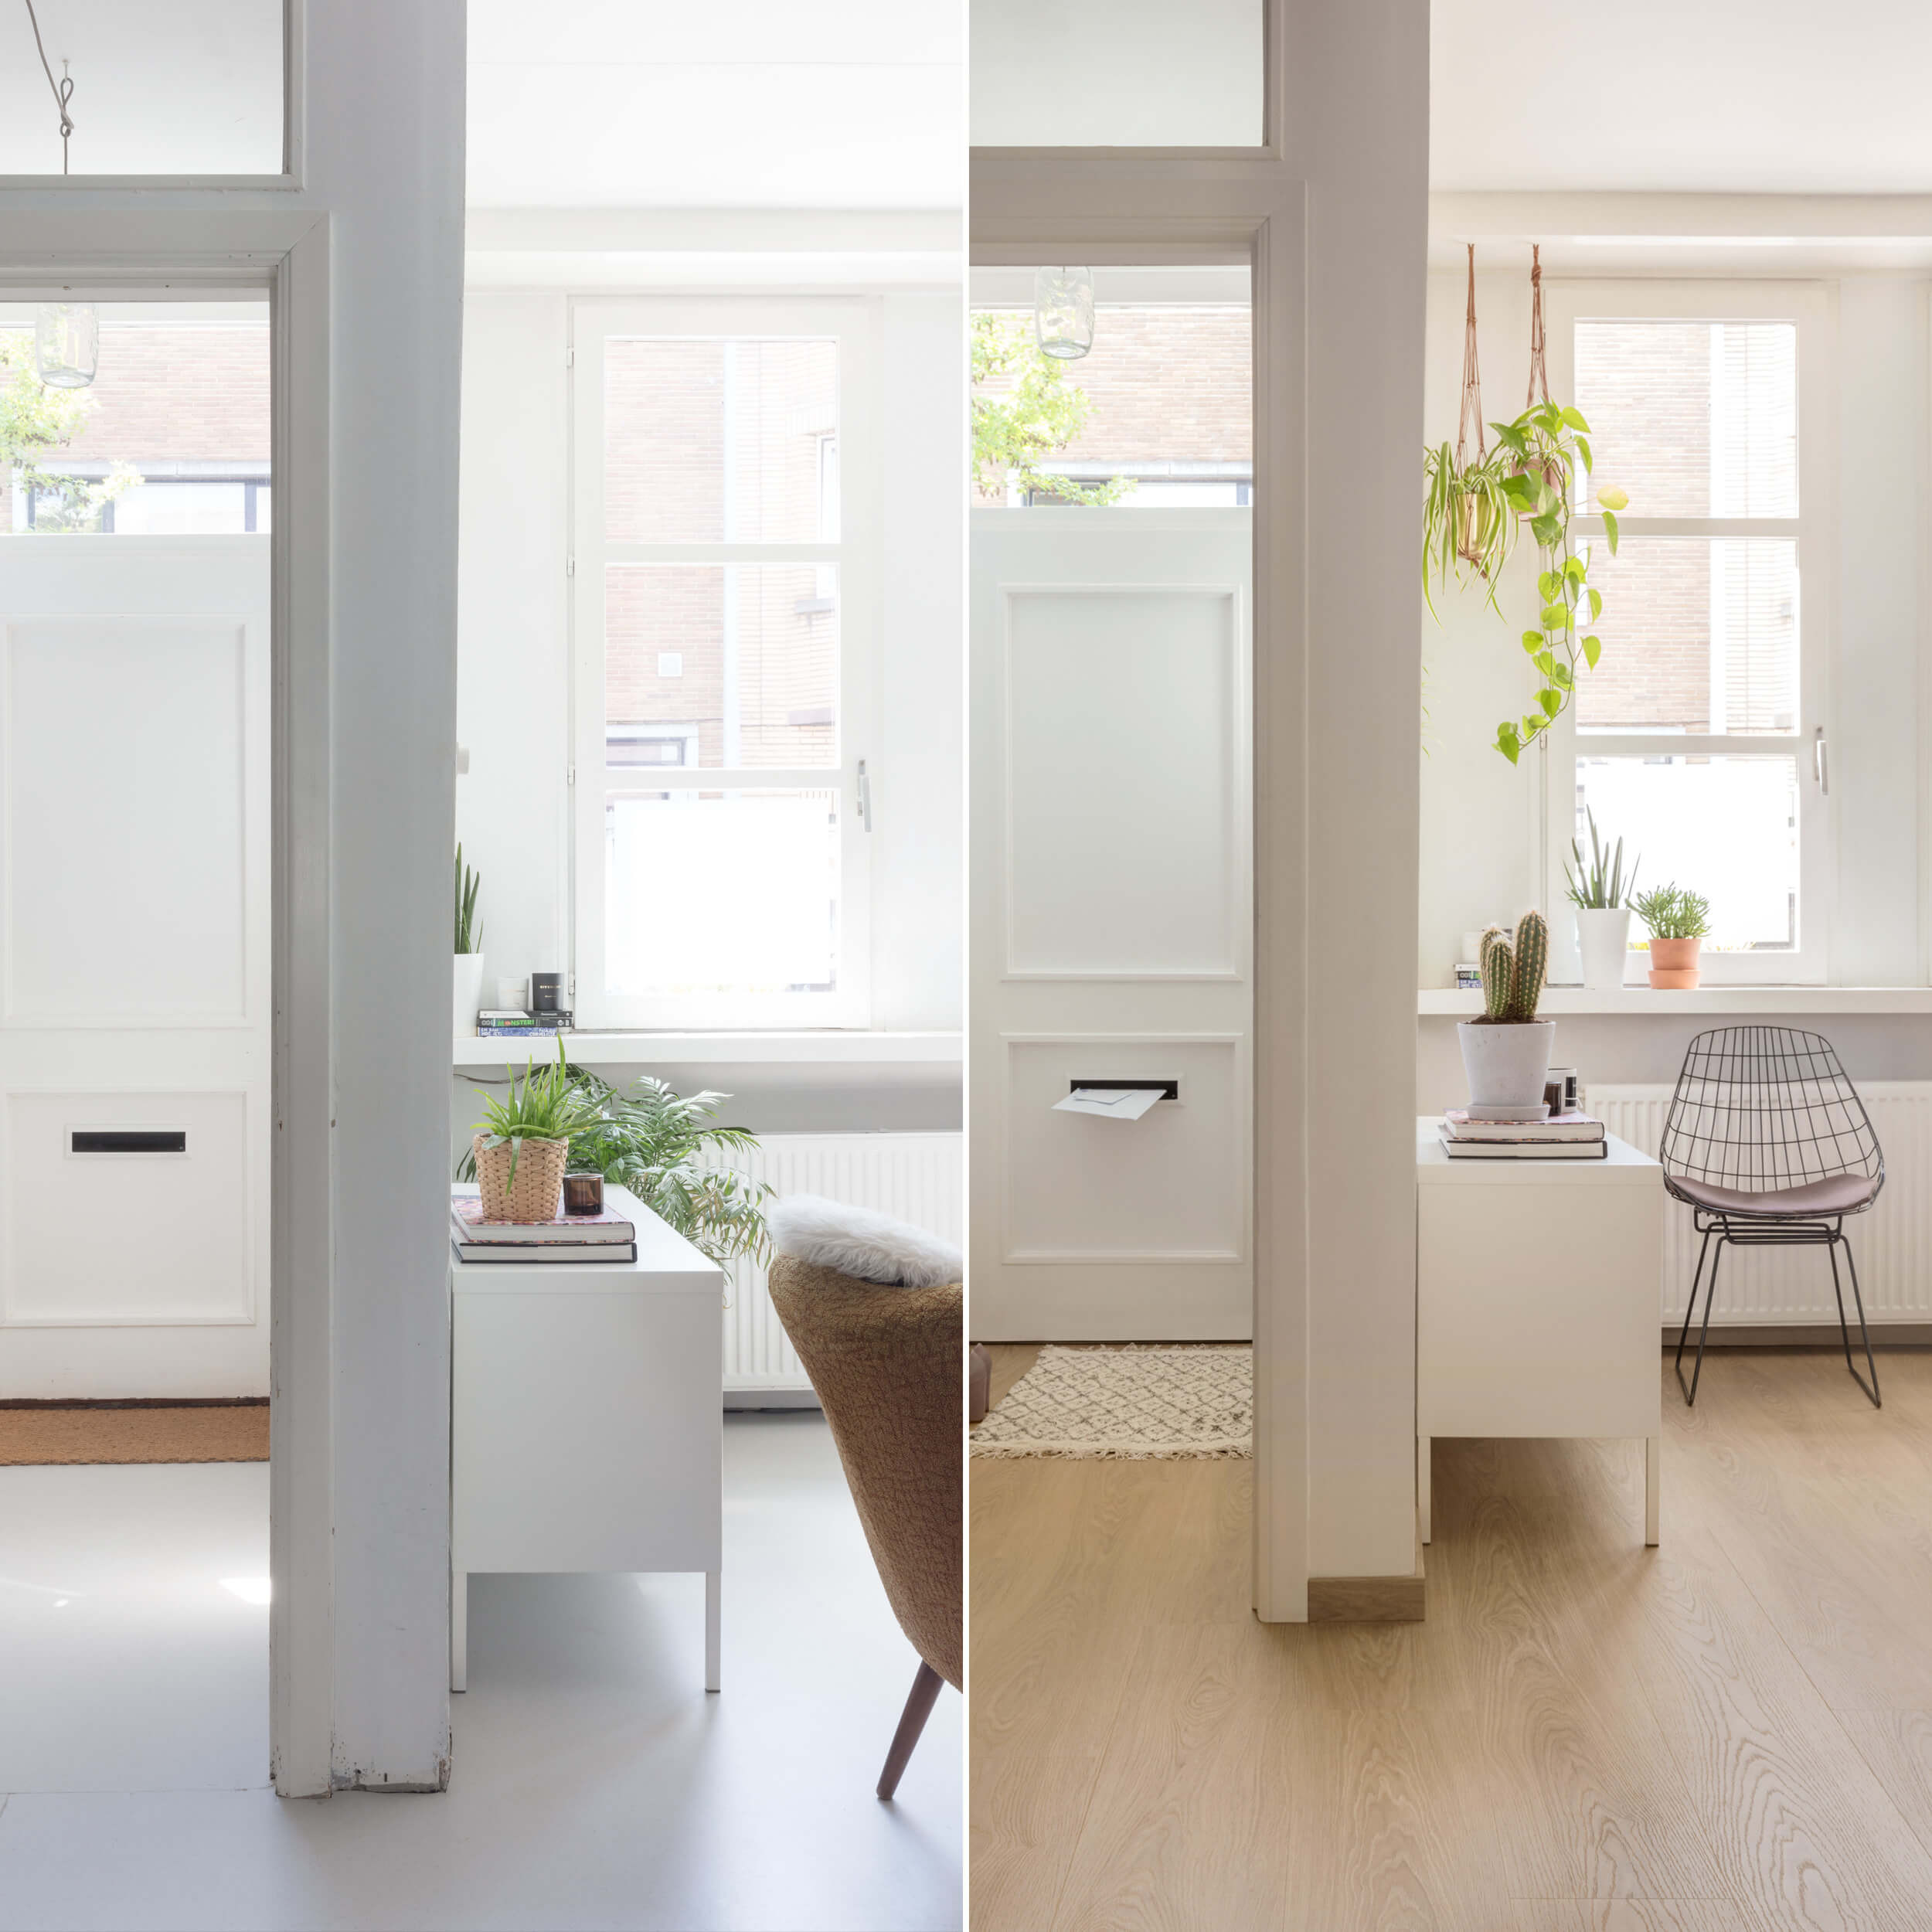 Before-and-after: From a failed linoleum to a warm wood look thanks to Floorify